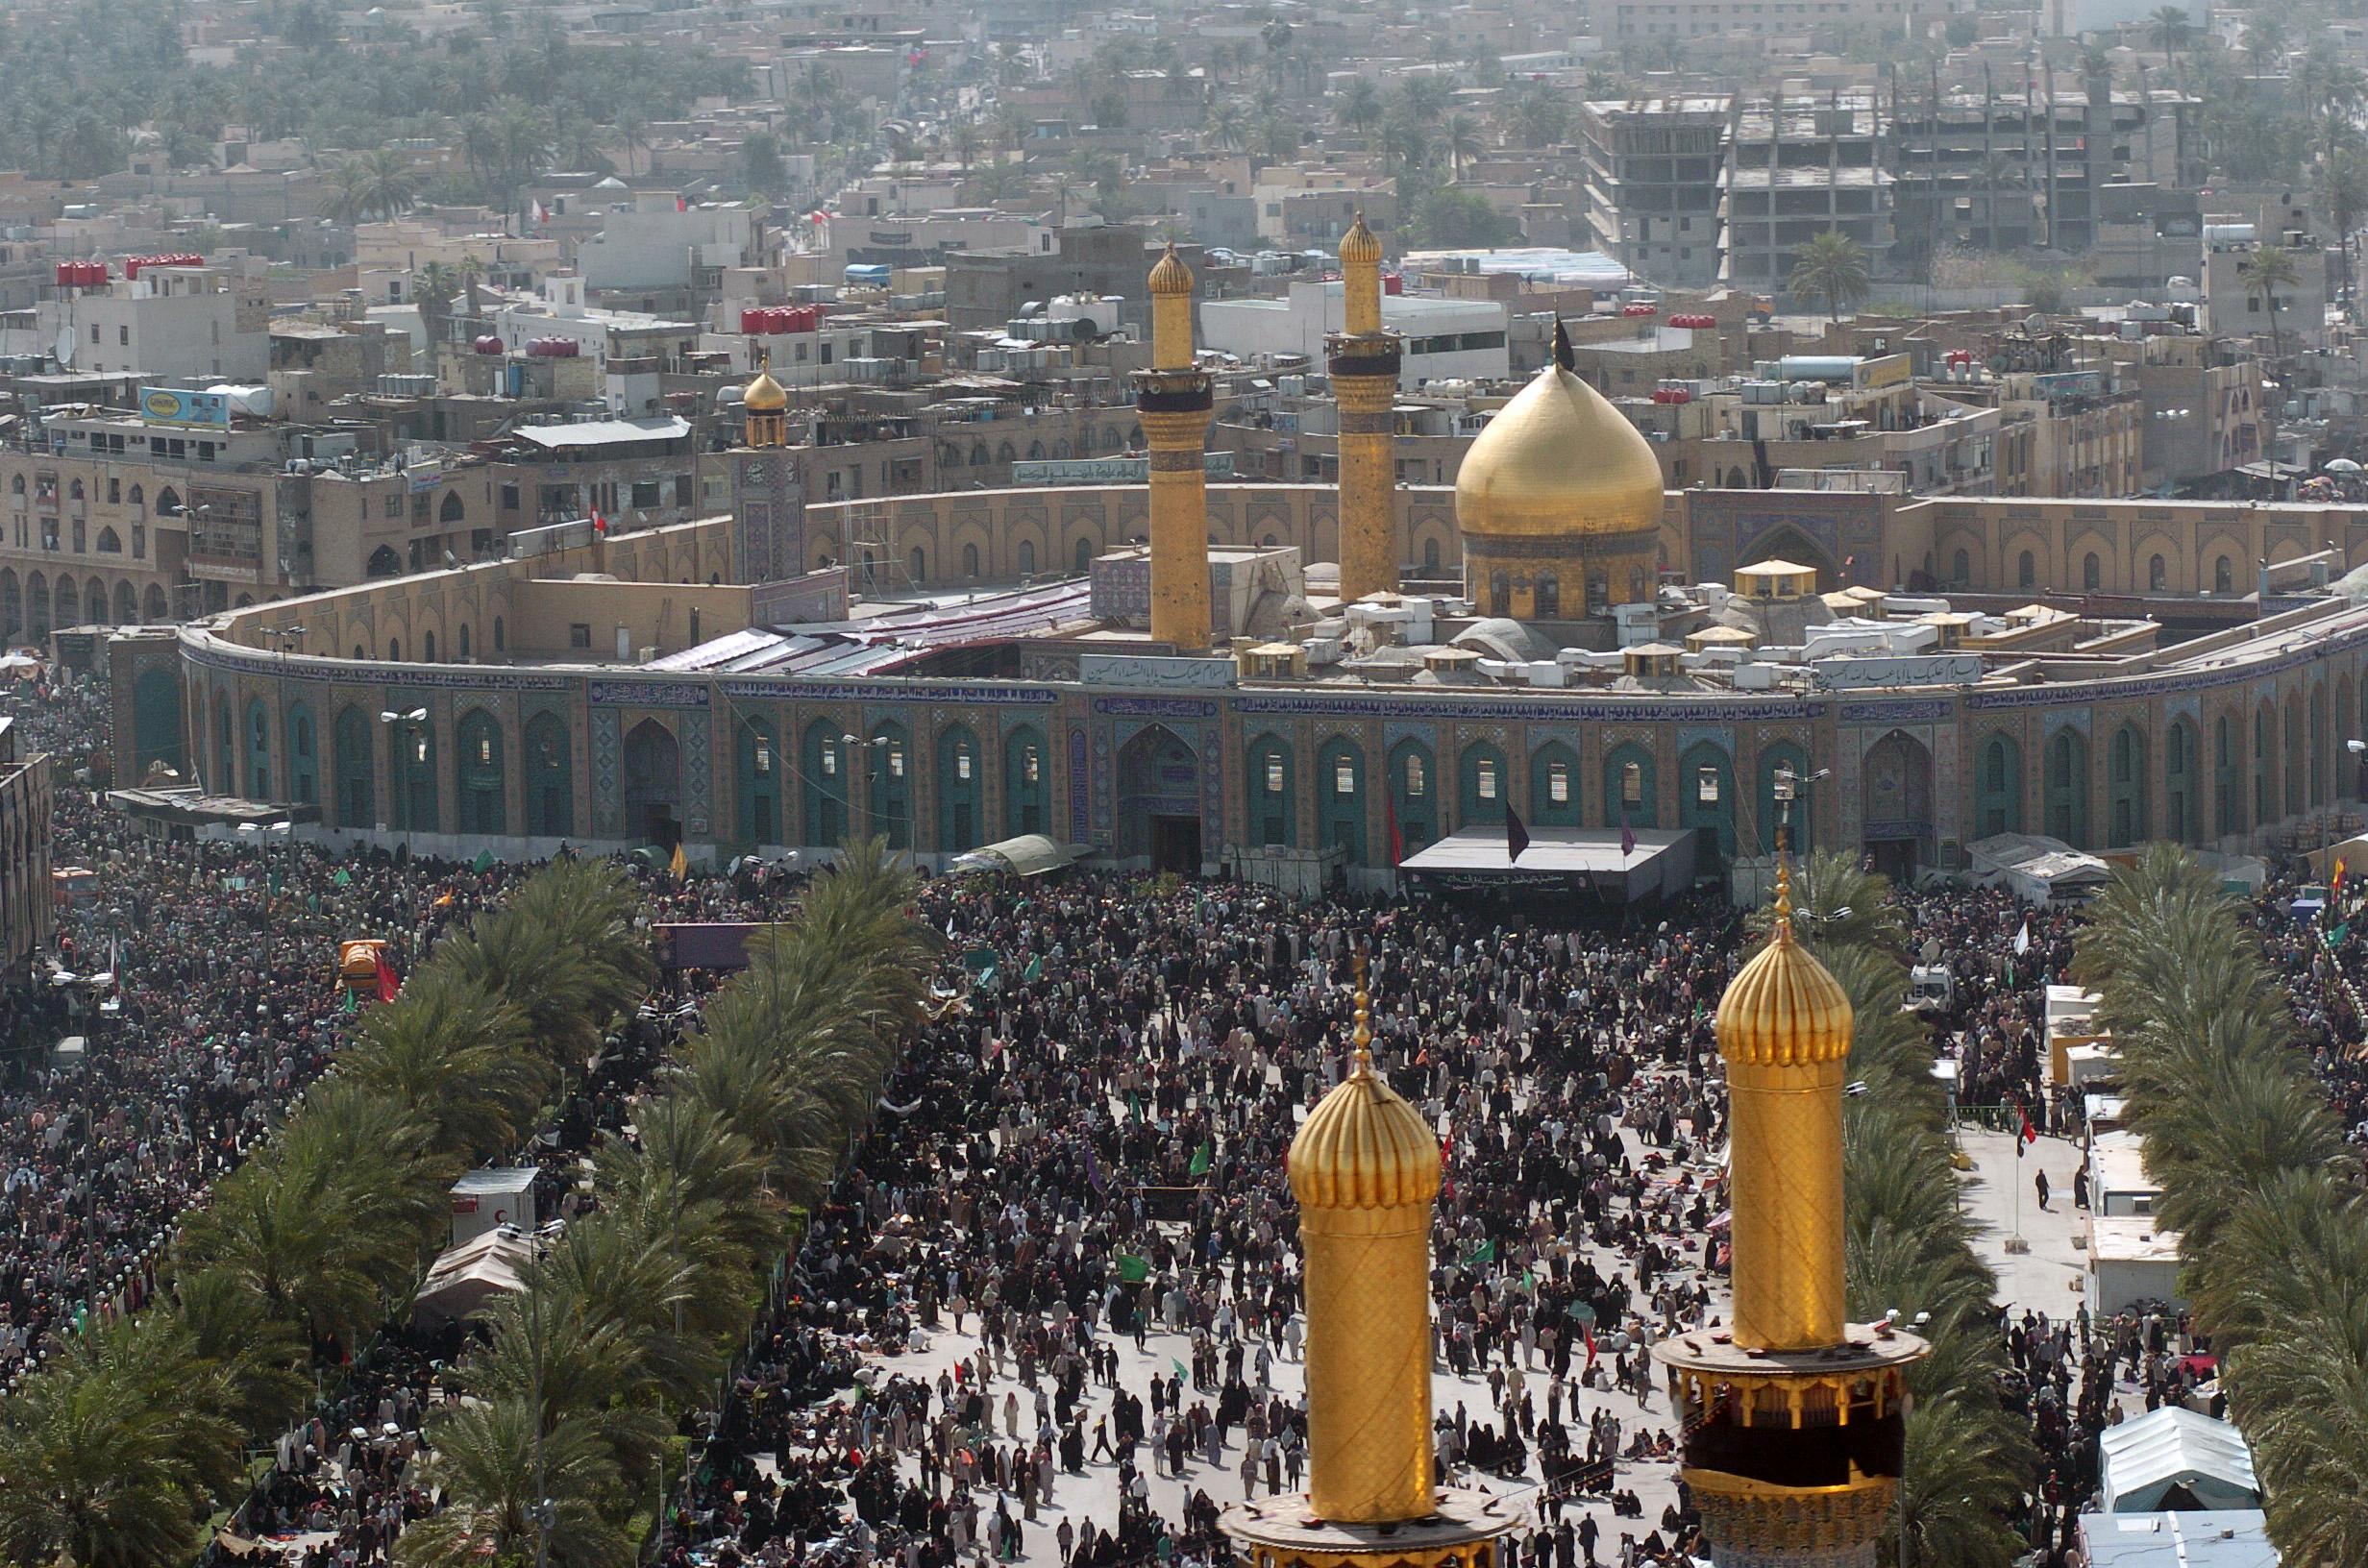 Hundreds of ShiÕa Muslims gather around the Husayn Mosque in Karbala after making the Pilgrimage on foot during Arba'een. Arba'een is a forty day period that commemorates the martyrdom of Husayn bin Ali, grandson of the Prophet Muhammad, and seventy-two of his followers at the Battle of Karbala in the year 680AD.